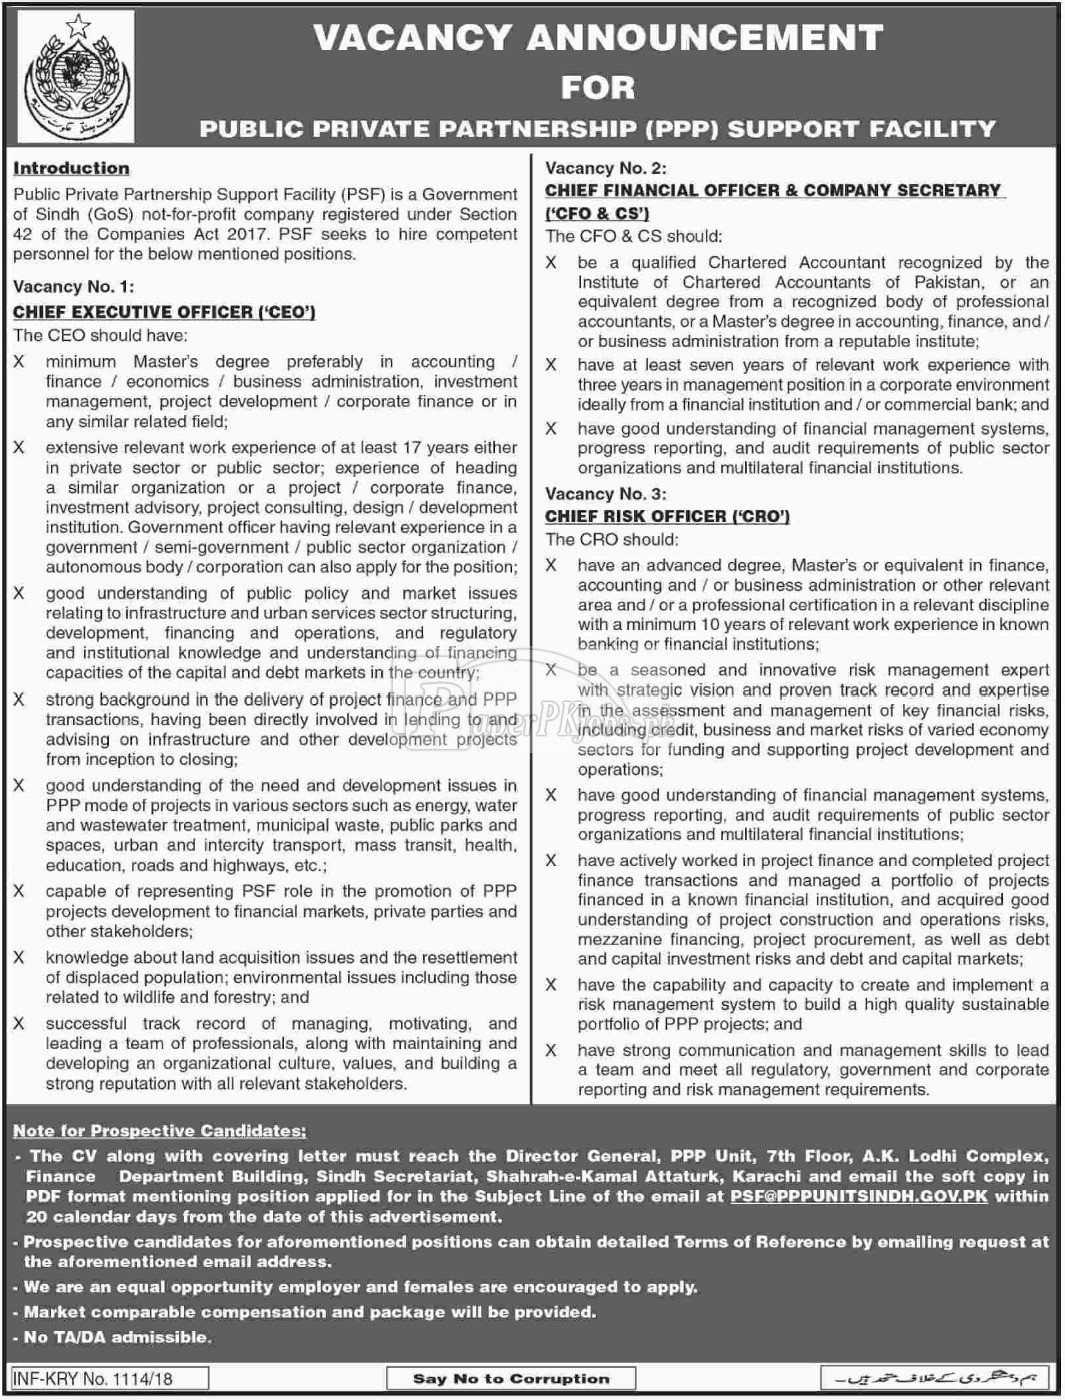 Public Private Partnership Support Facility Sindh Jobs 2018